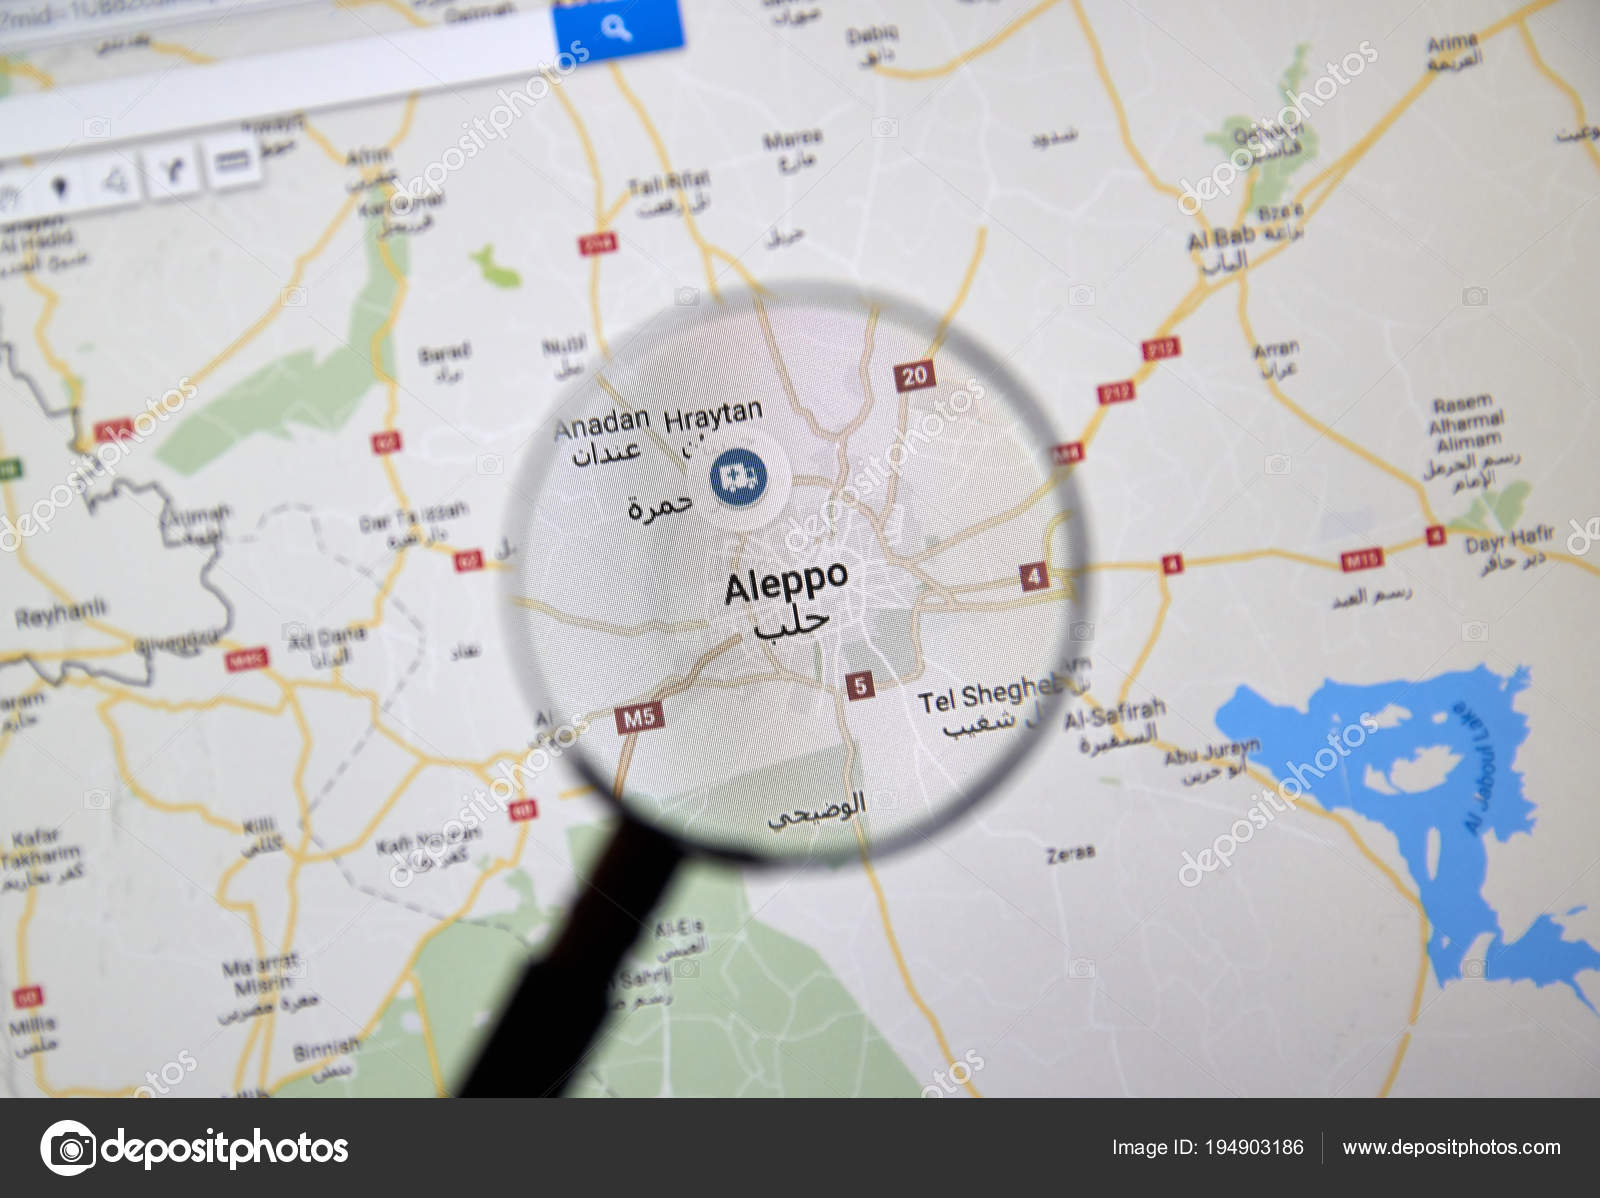 Aleppo Syria On Google Maps Under Magnifying Glass Stock